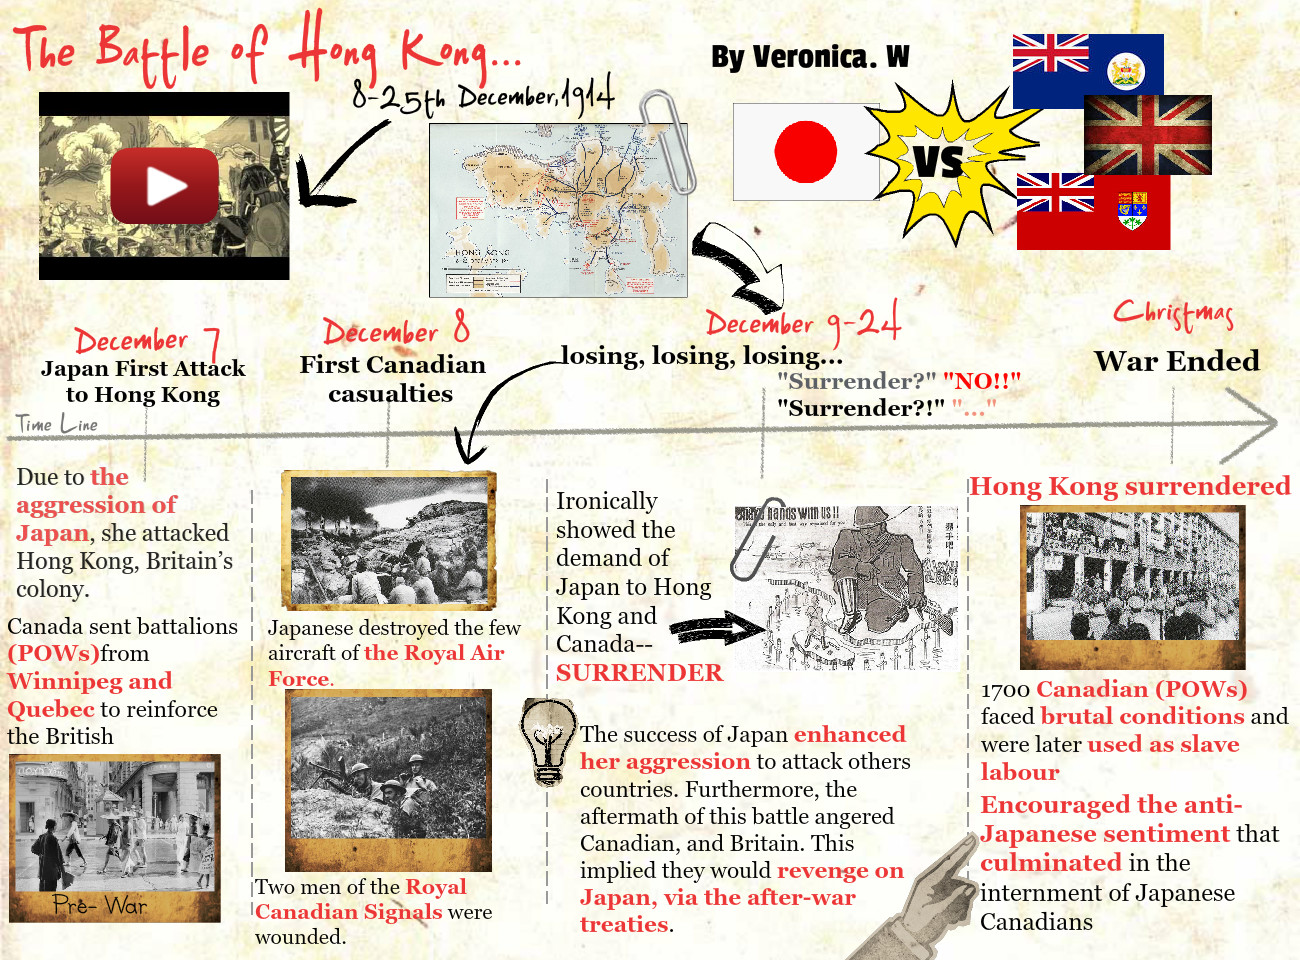 SS11- WWII- The Battle of Hong Kong